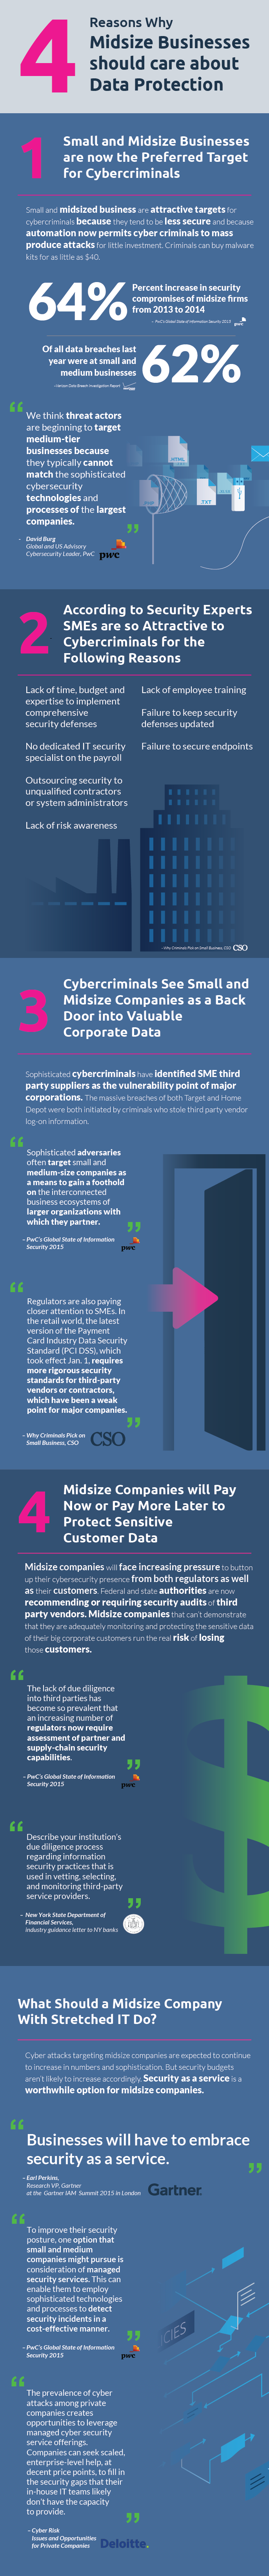 4 Reasons Why Midsize Businesses Should Care About Data Protection | Managed Security Services Infographic